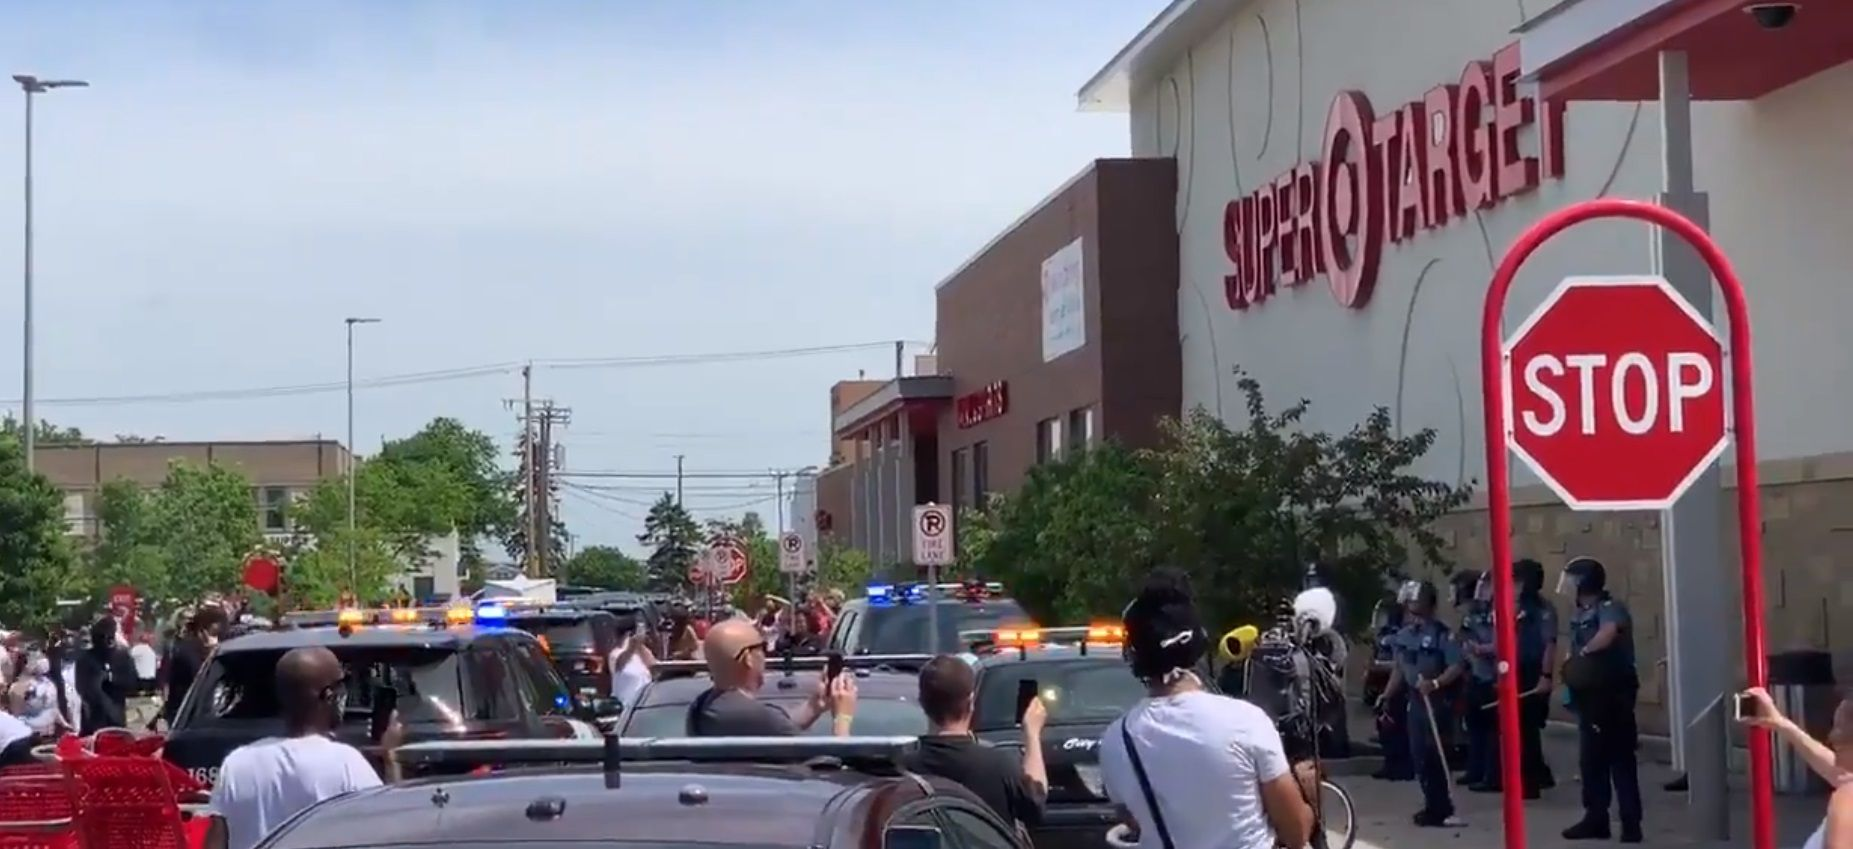 Overflow of Minneapolis riots has moved into St. Paul